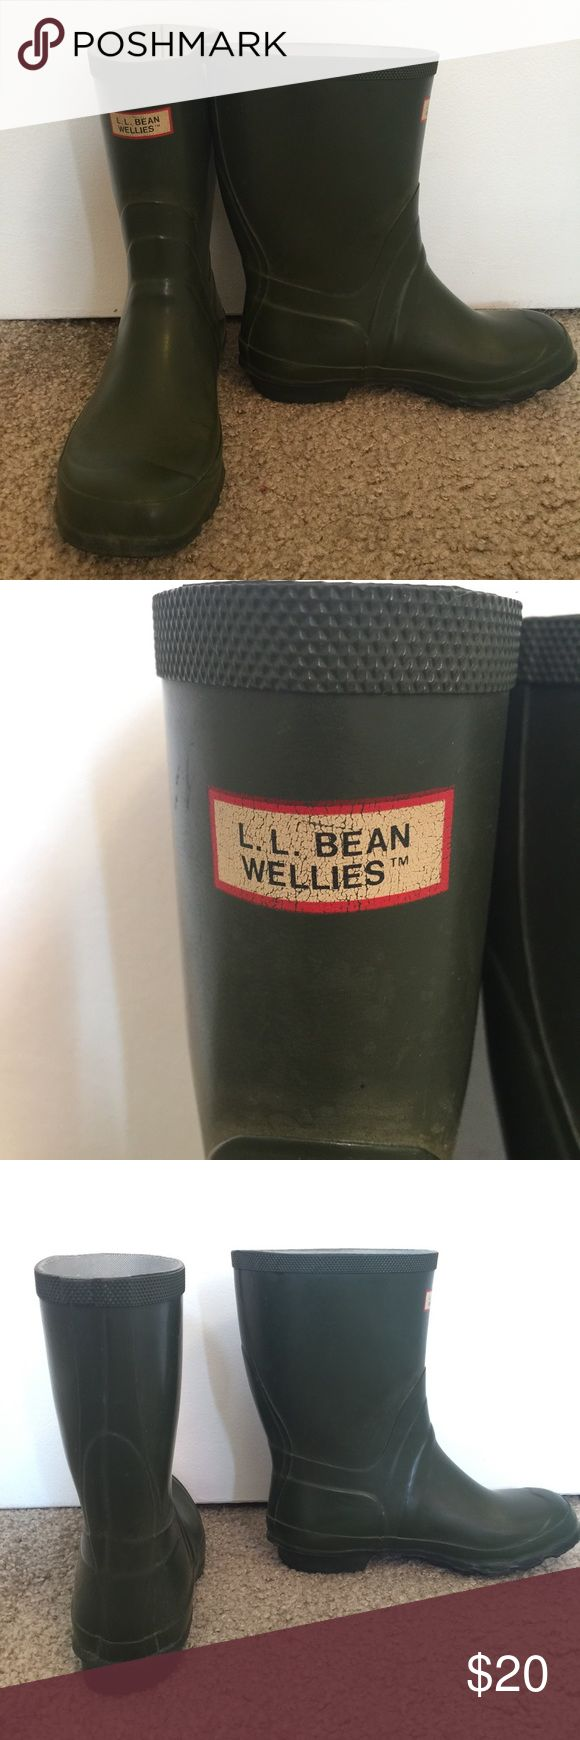 L.L. Bean Wellies Rain Boots Size 6 These rain boots are cute and functional! You can buy inserts to easily convert them into warm, waterproof snow boots as well. They are completely water resistant and easy to clean. L.L. Bean Shoes Winter & Rain Boots